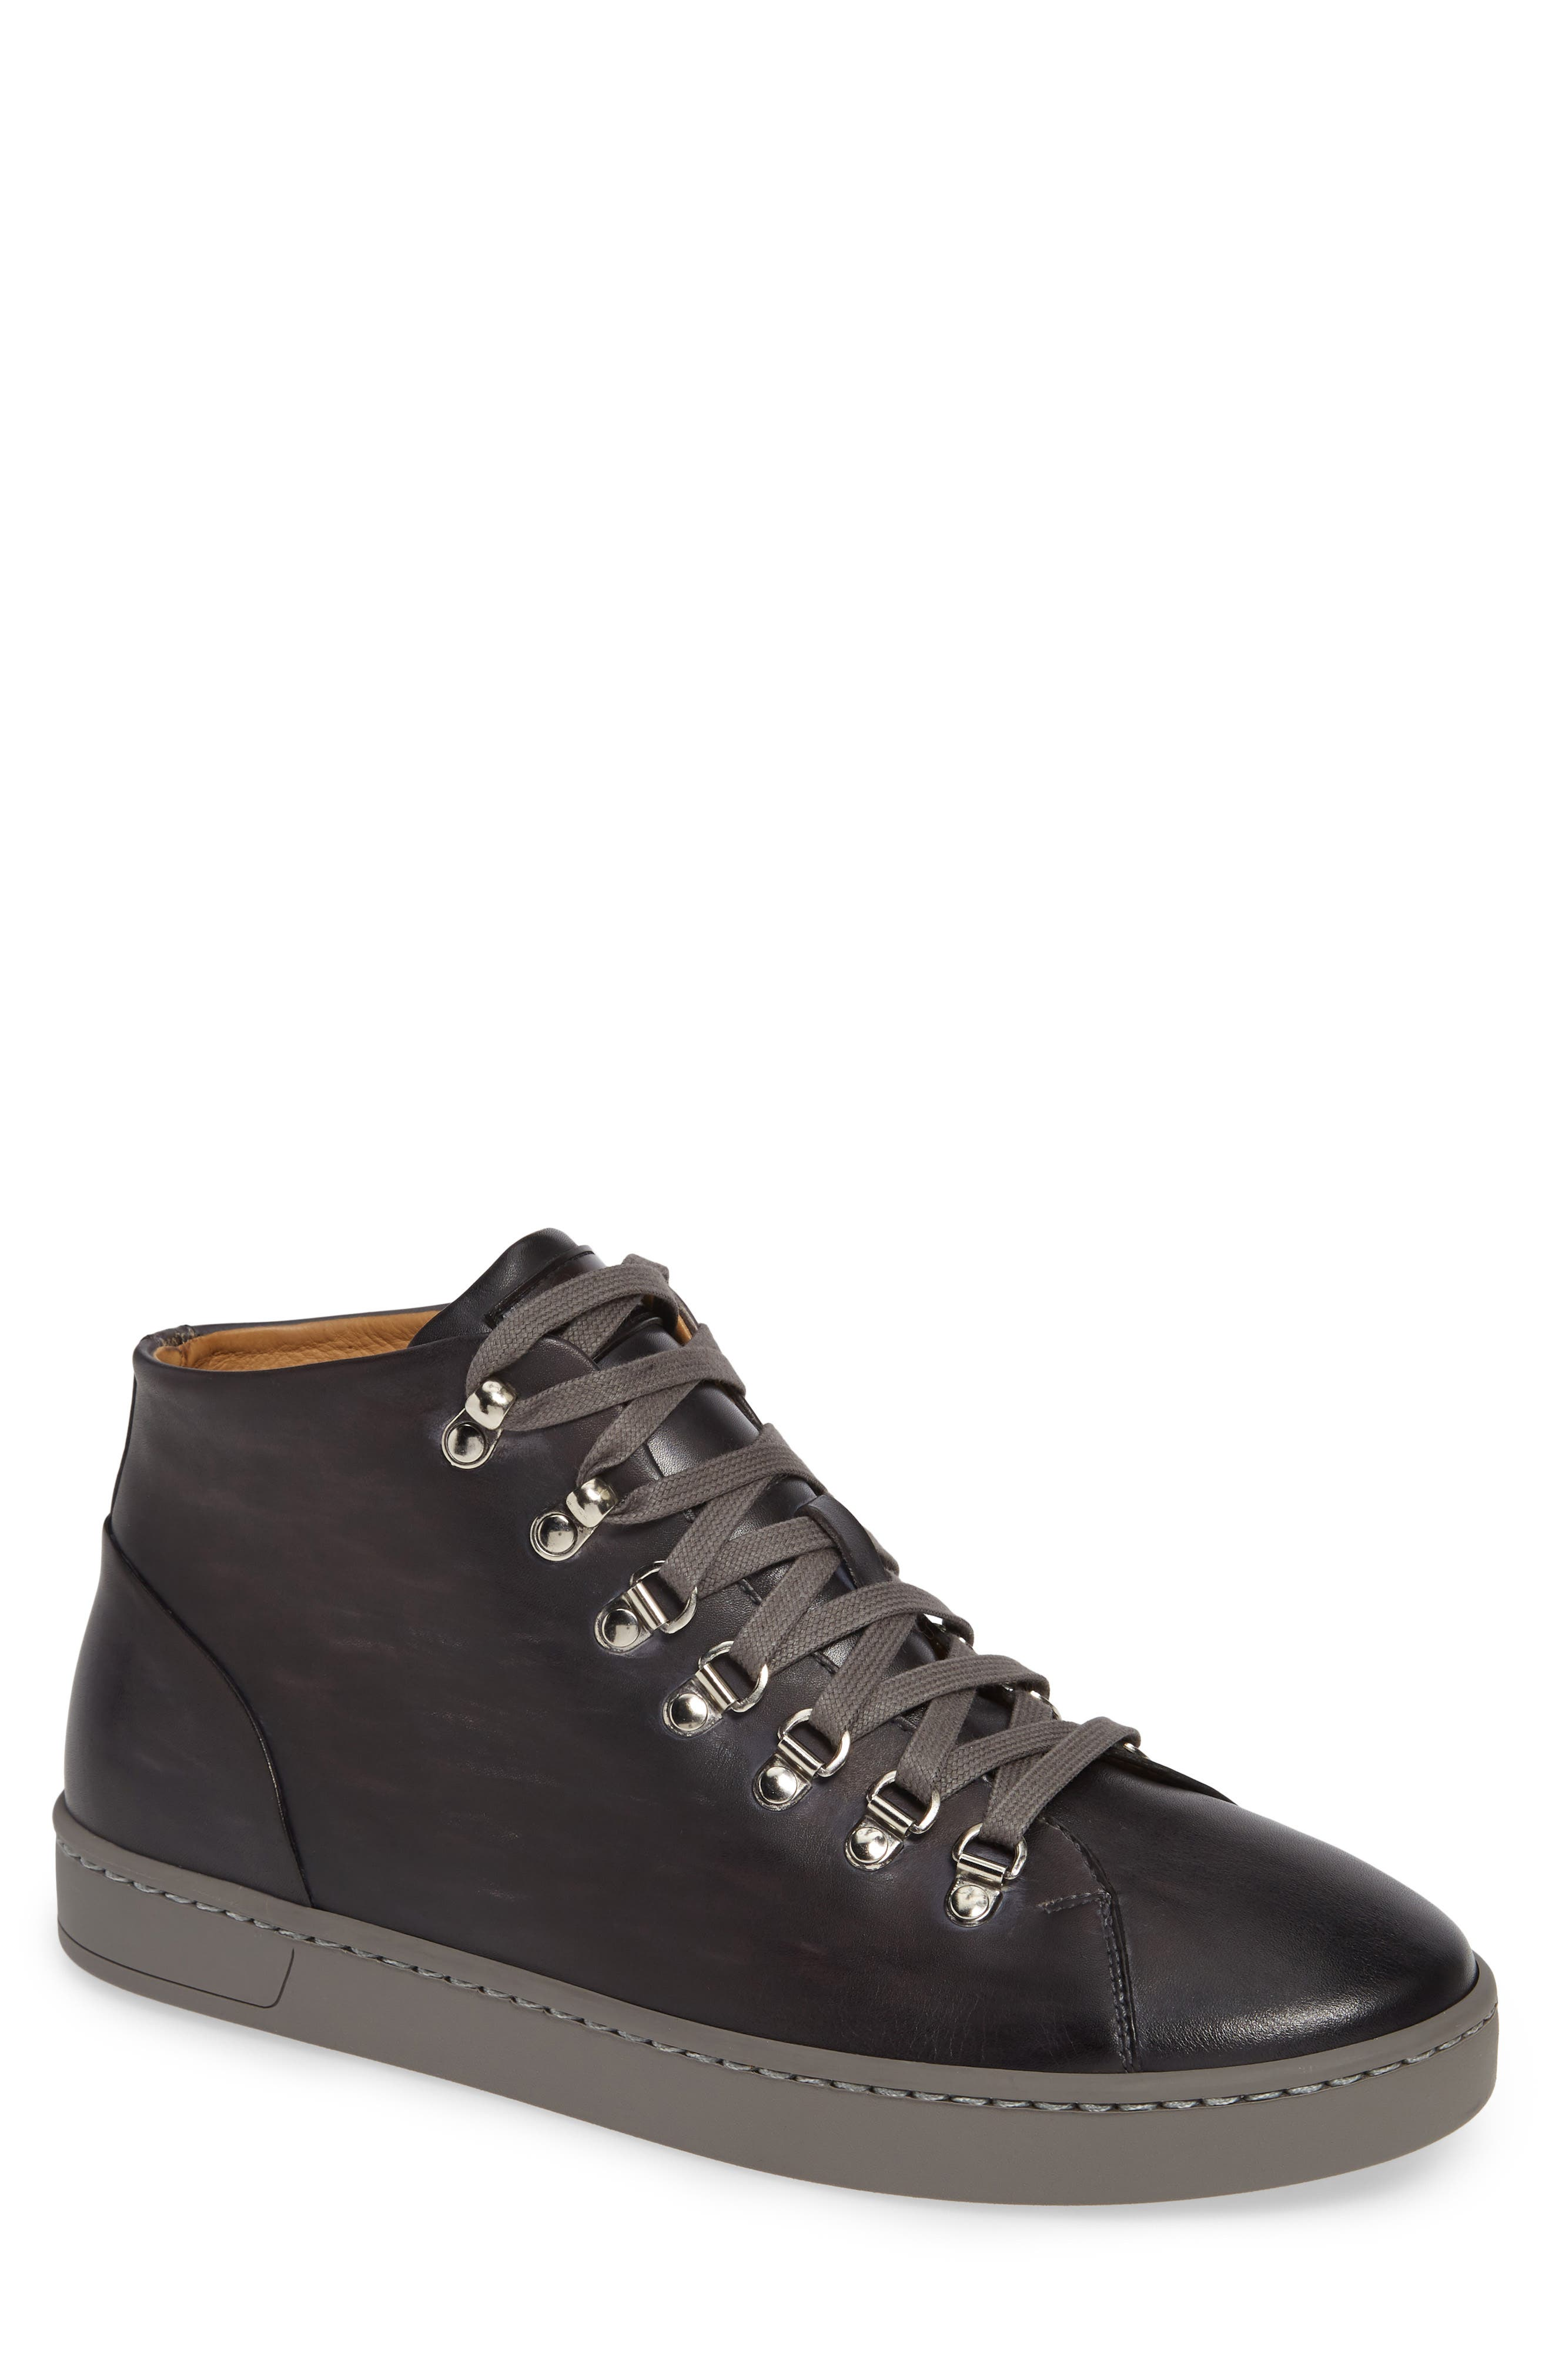 Rocco Sneaker,                         Main,                         color, GREY LEATHER